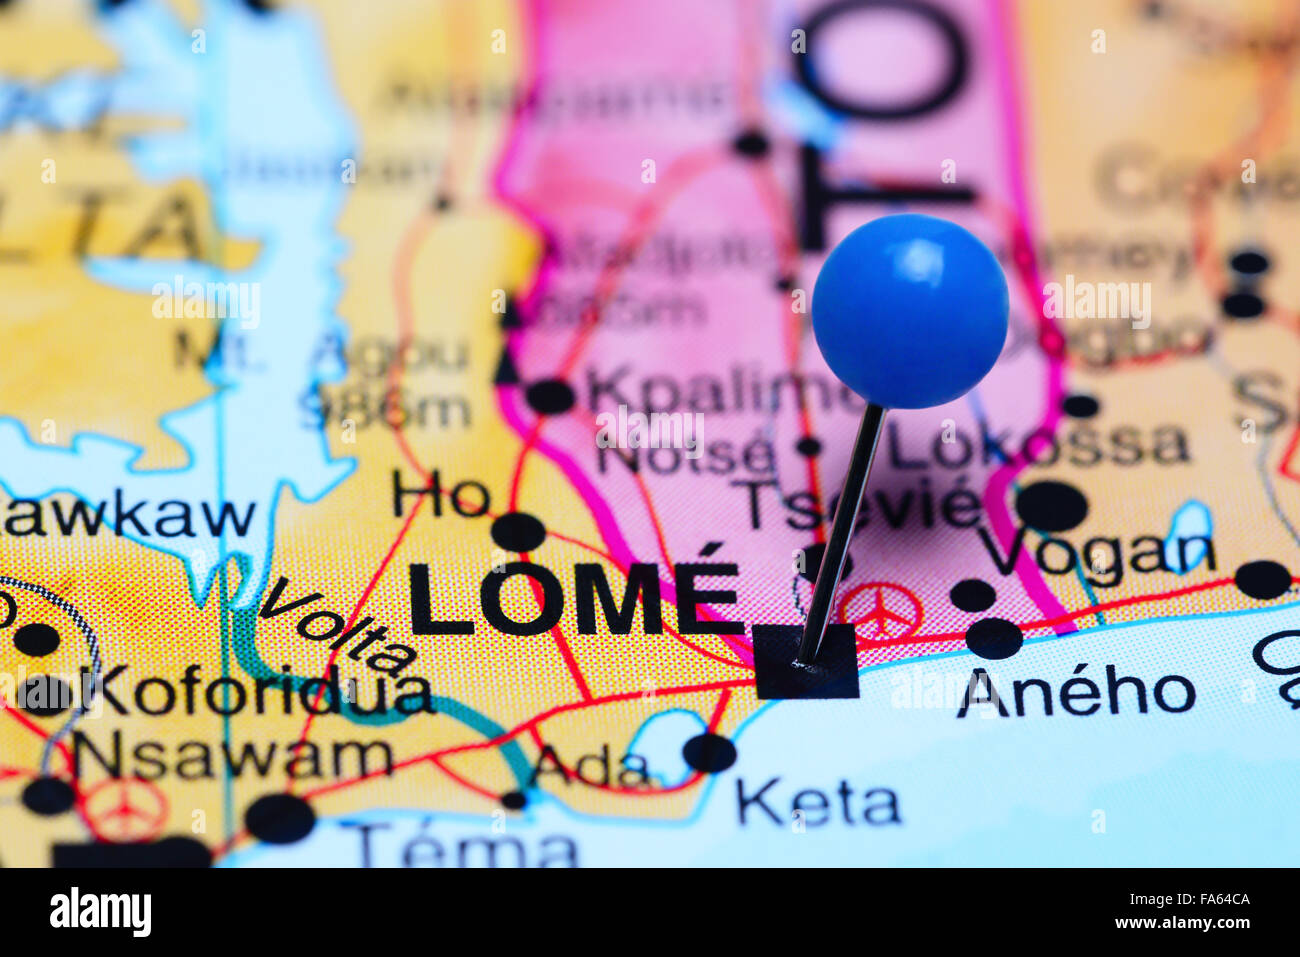 Lome Stock Photos Lome Stock Images Alamy